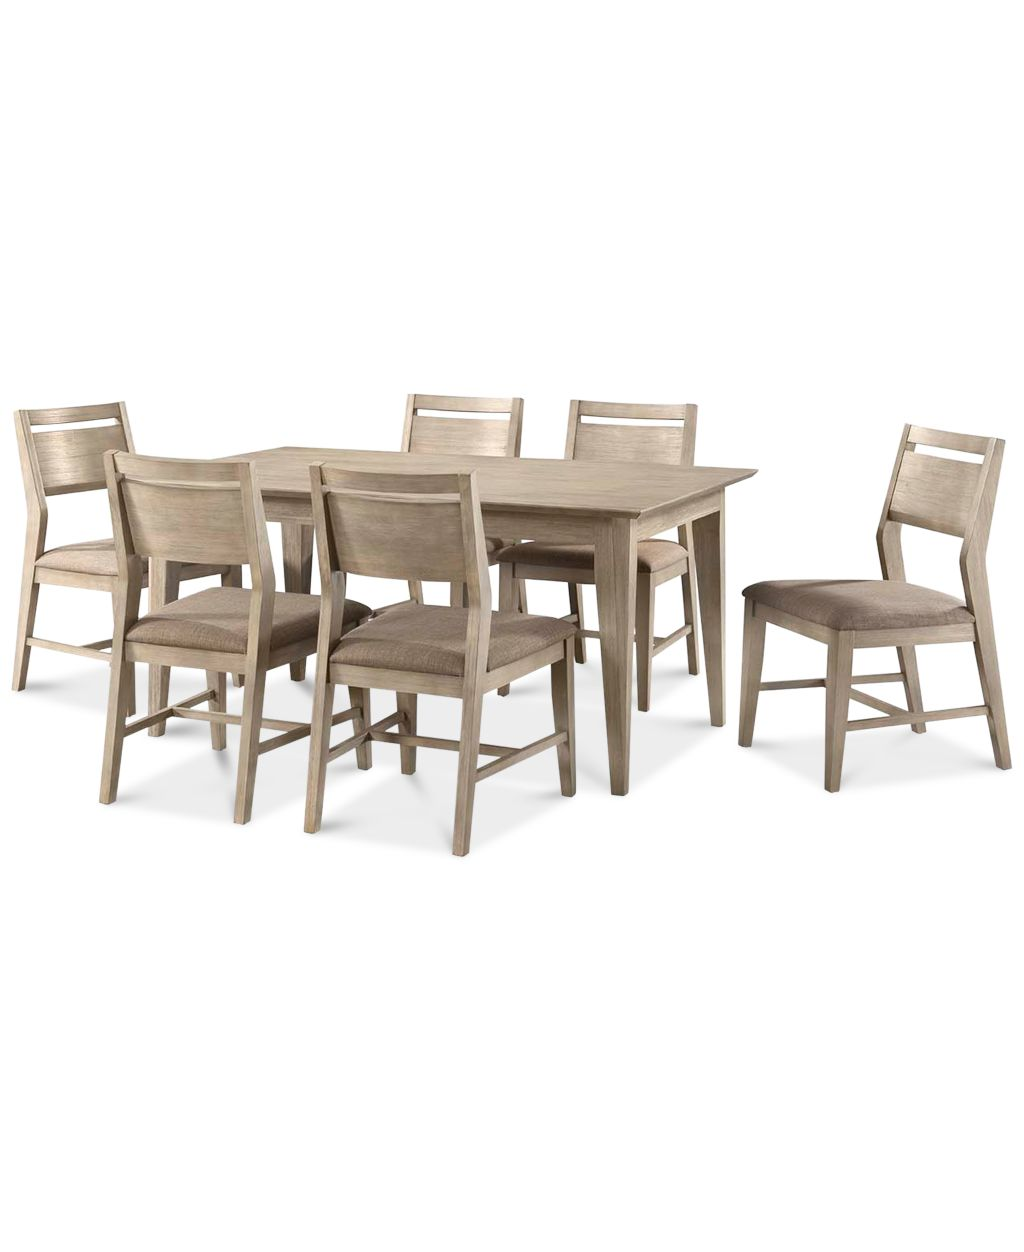 Kips cove dining furniture 7 pc set dining table 6 for Side chairs for dining table